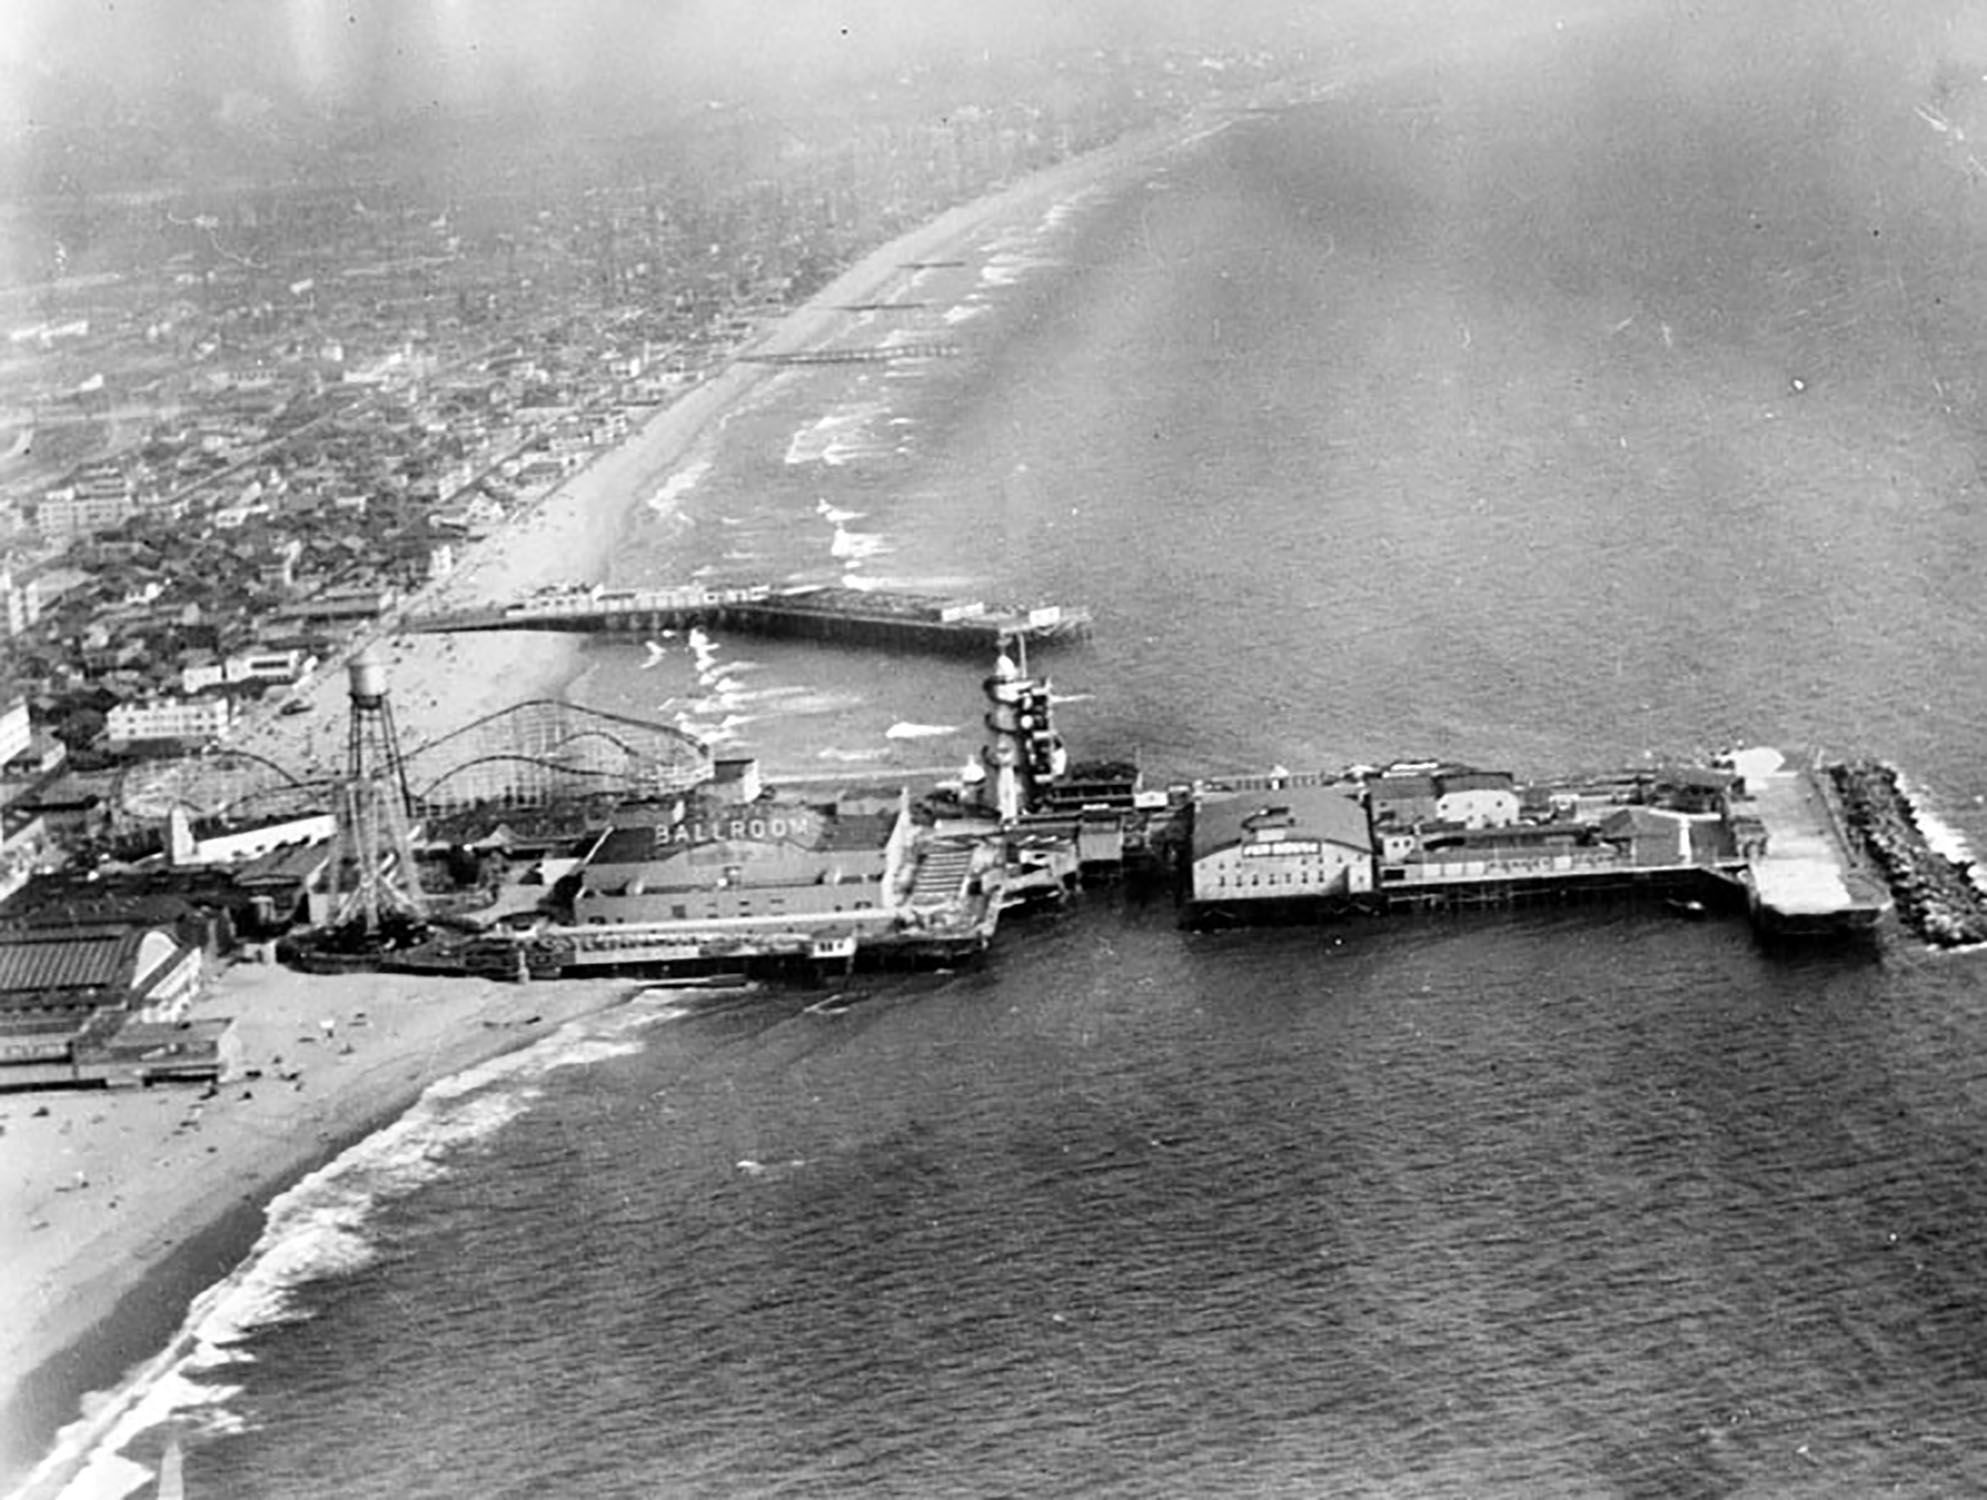 The doomed Venice Beach Pier in 1946, shortly before